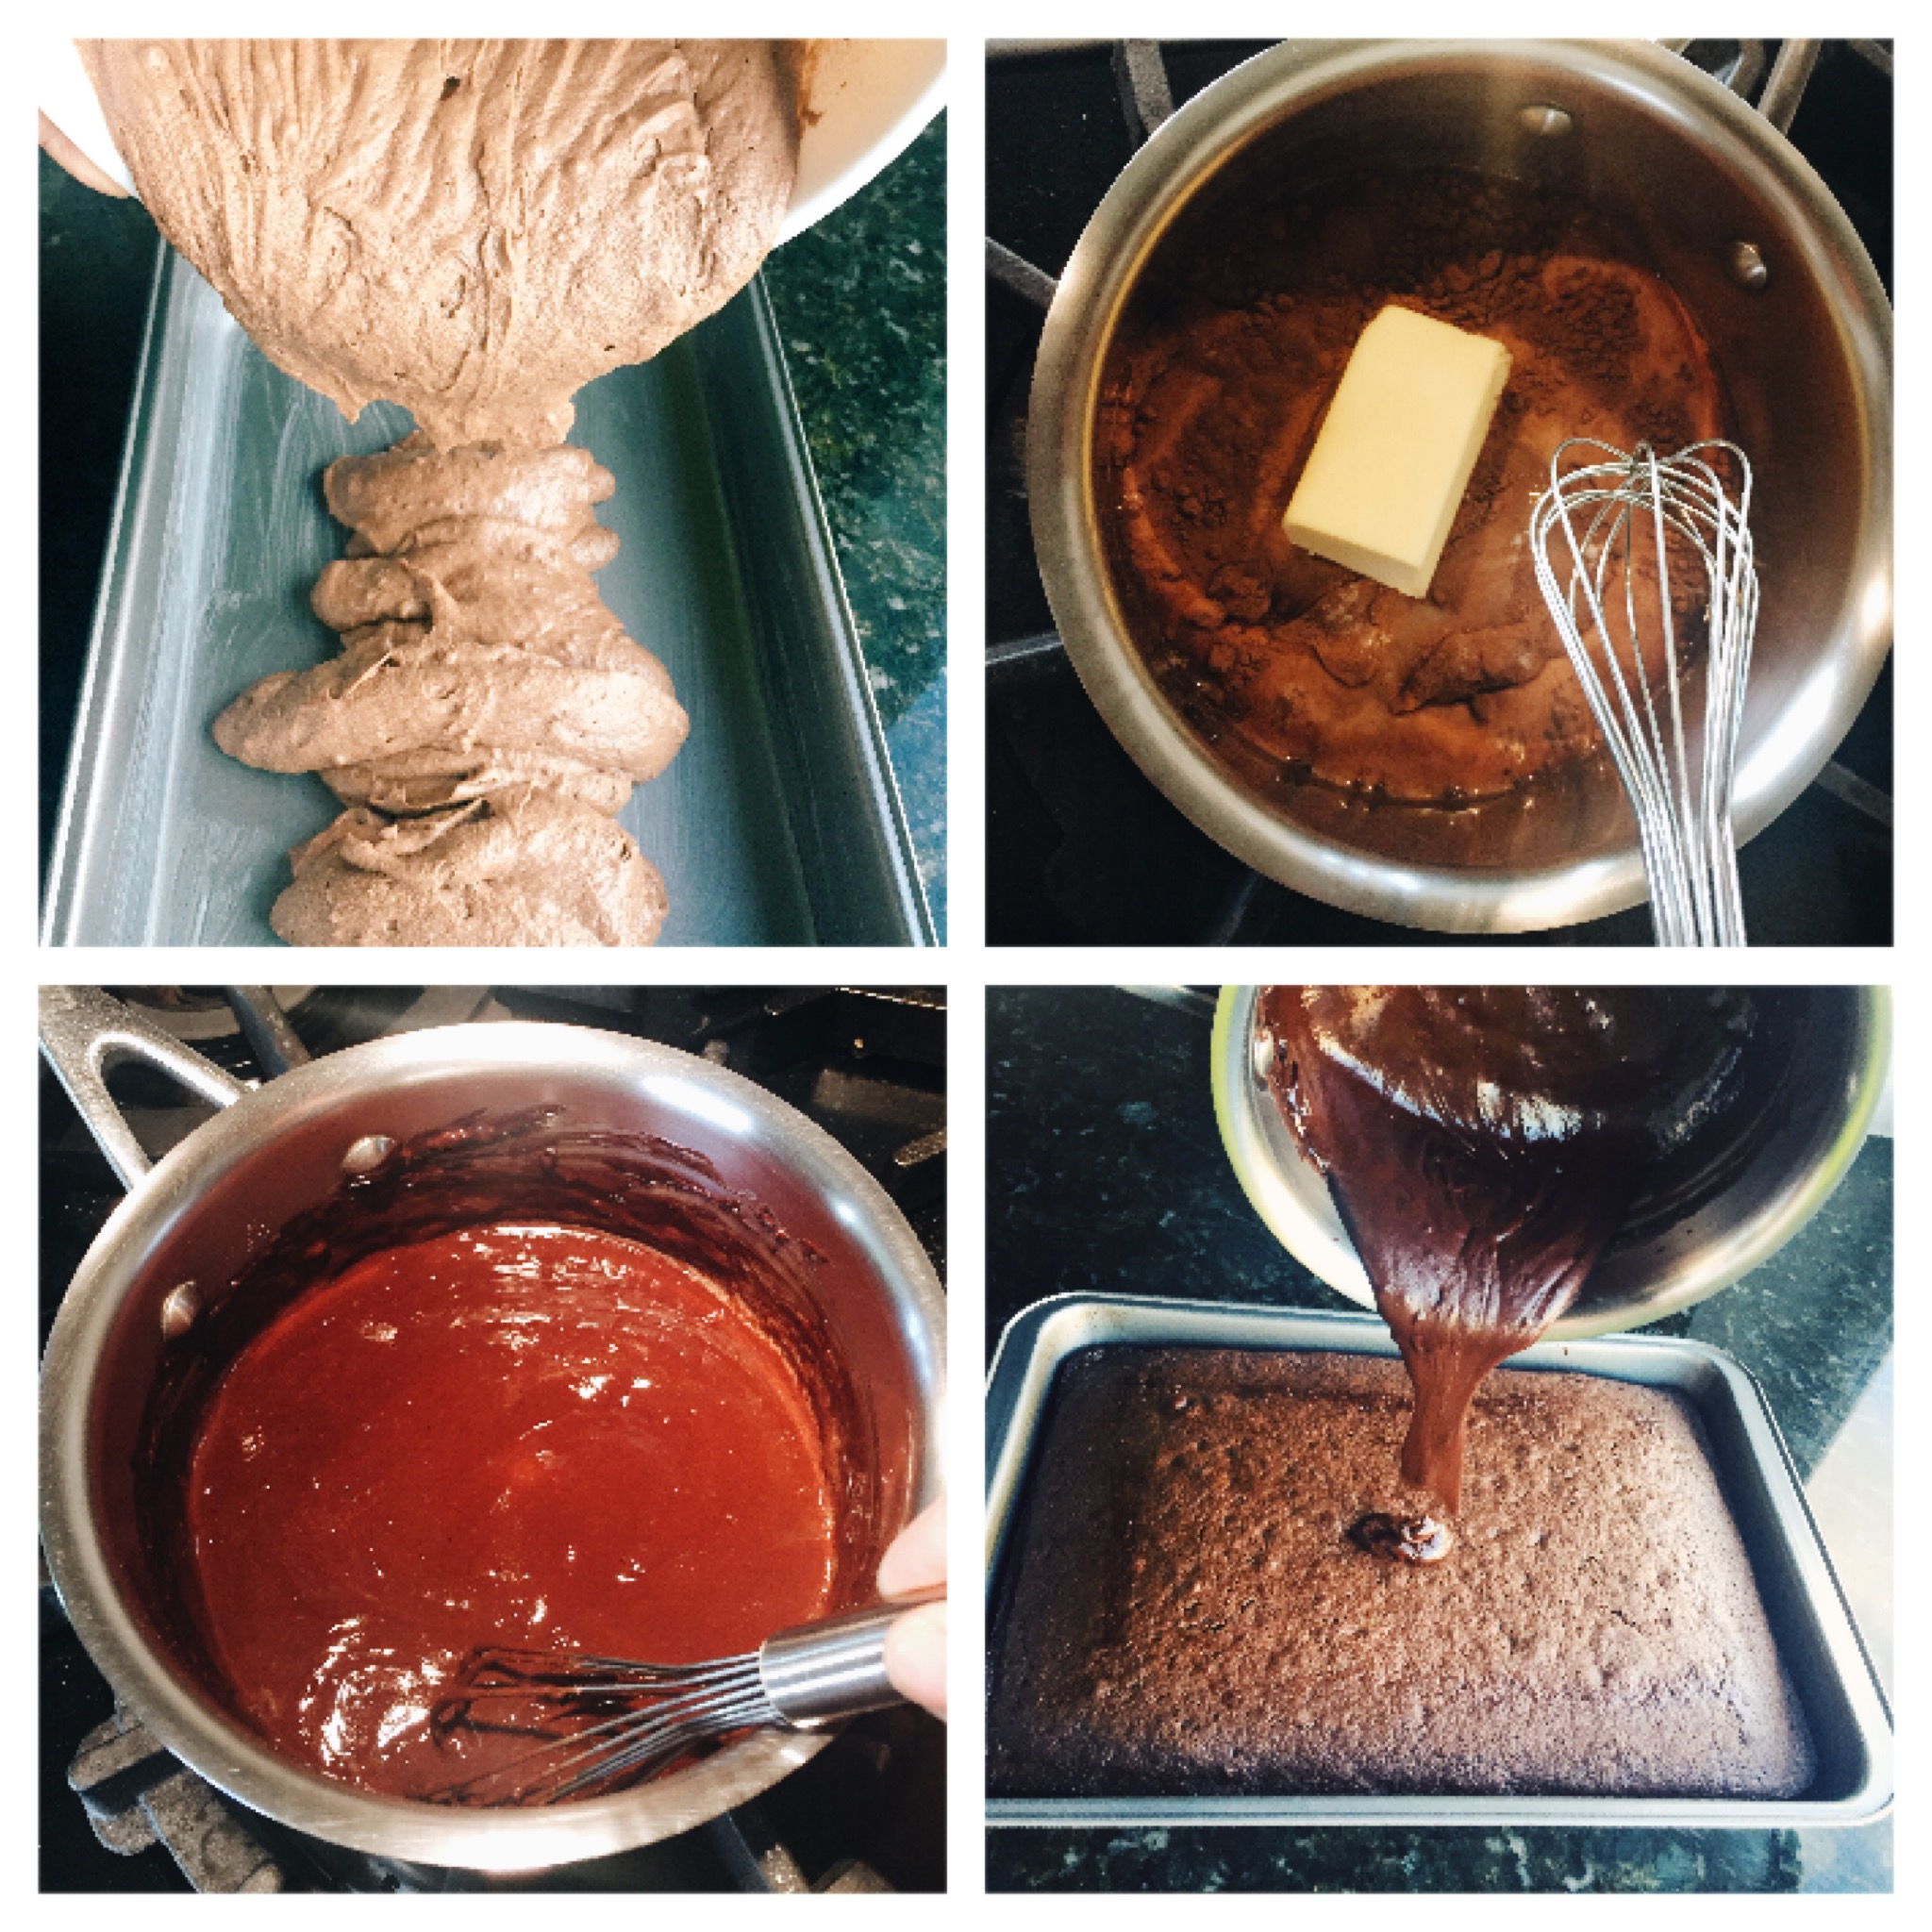 Prepare cake mix. For the chocolate frosting - 3 tbsp unsweetened cocoa, 3 tbsp of any milk, 1 1/2 tbsp butter, 2 tbsp sugar. Mix all ingredients in a saucepan at medium heat until homogeneous. Pour the frosting on the top of the cake and dig in!